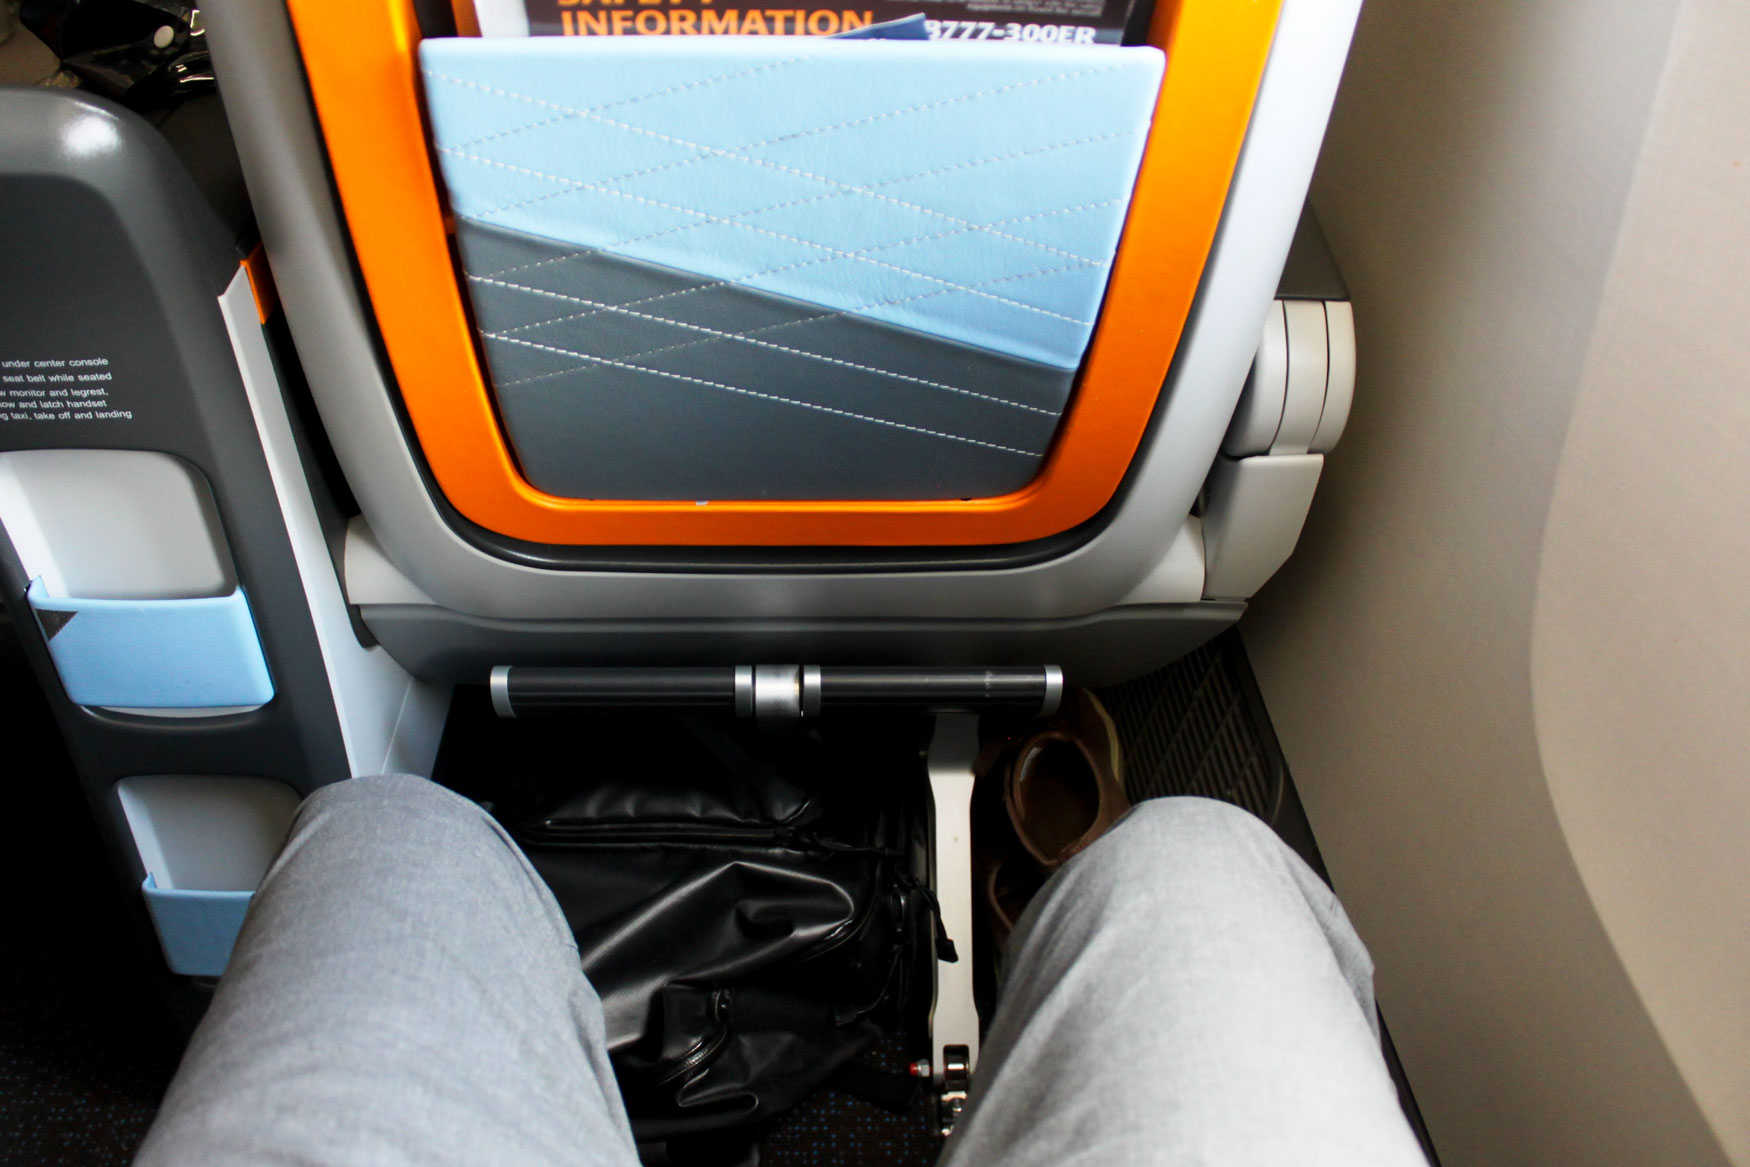 Singapore Airlines 777-300ER Premium Economy Class Seat Pitch